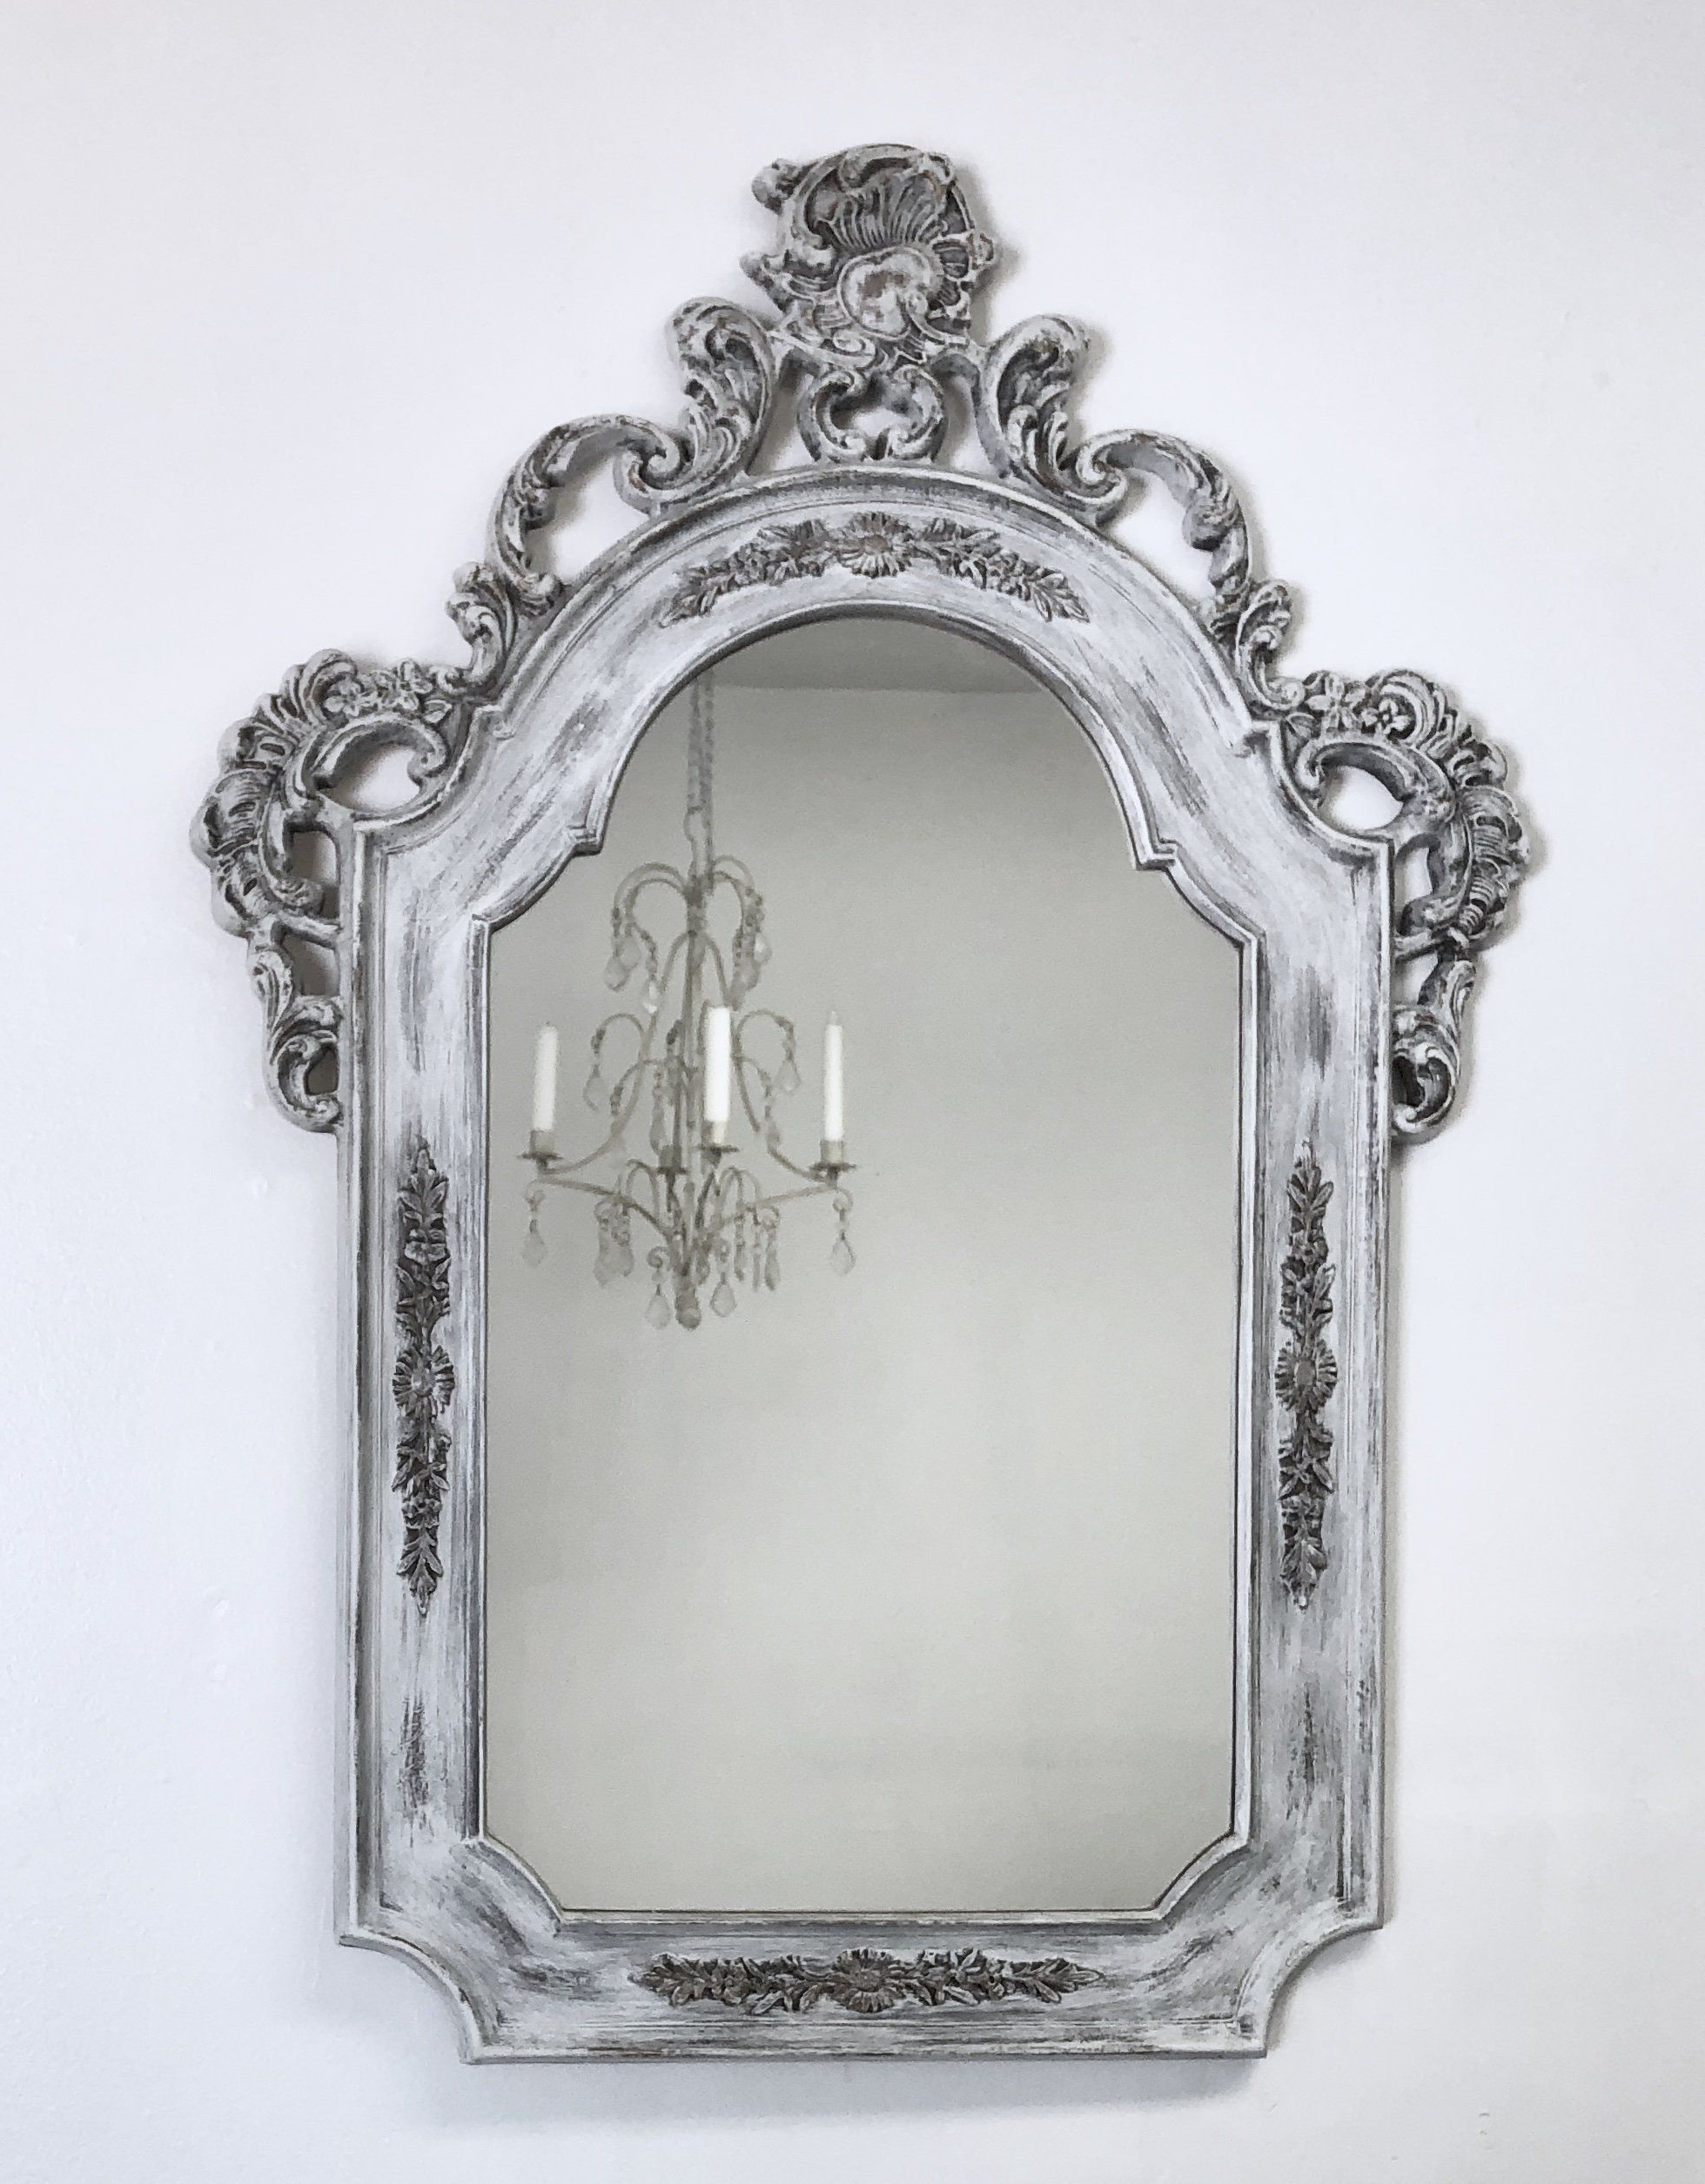 """Current Antique Framed Mirror For Sale 32""""x23"""" Distressed White Intended For White Shabby Chic Wall Mirrors (View 14 of 20)"""